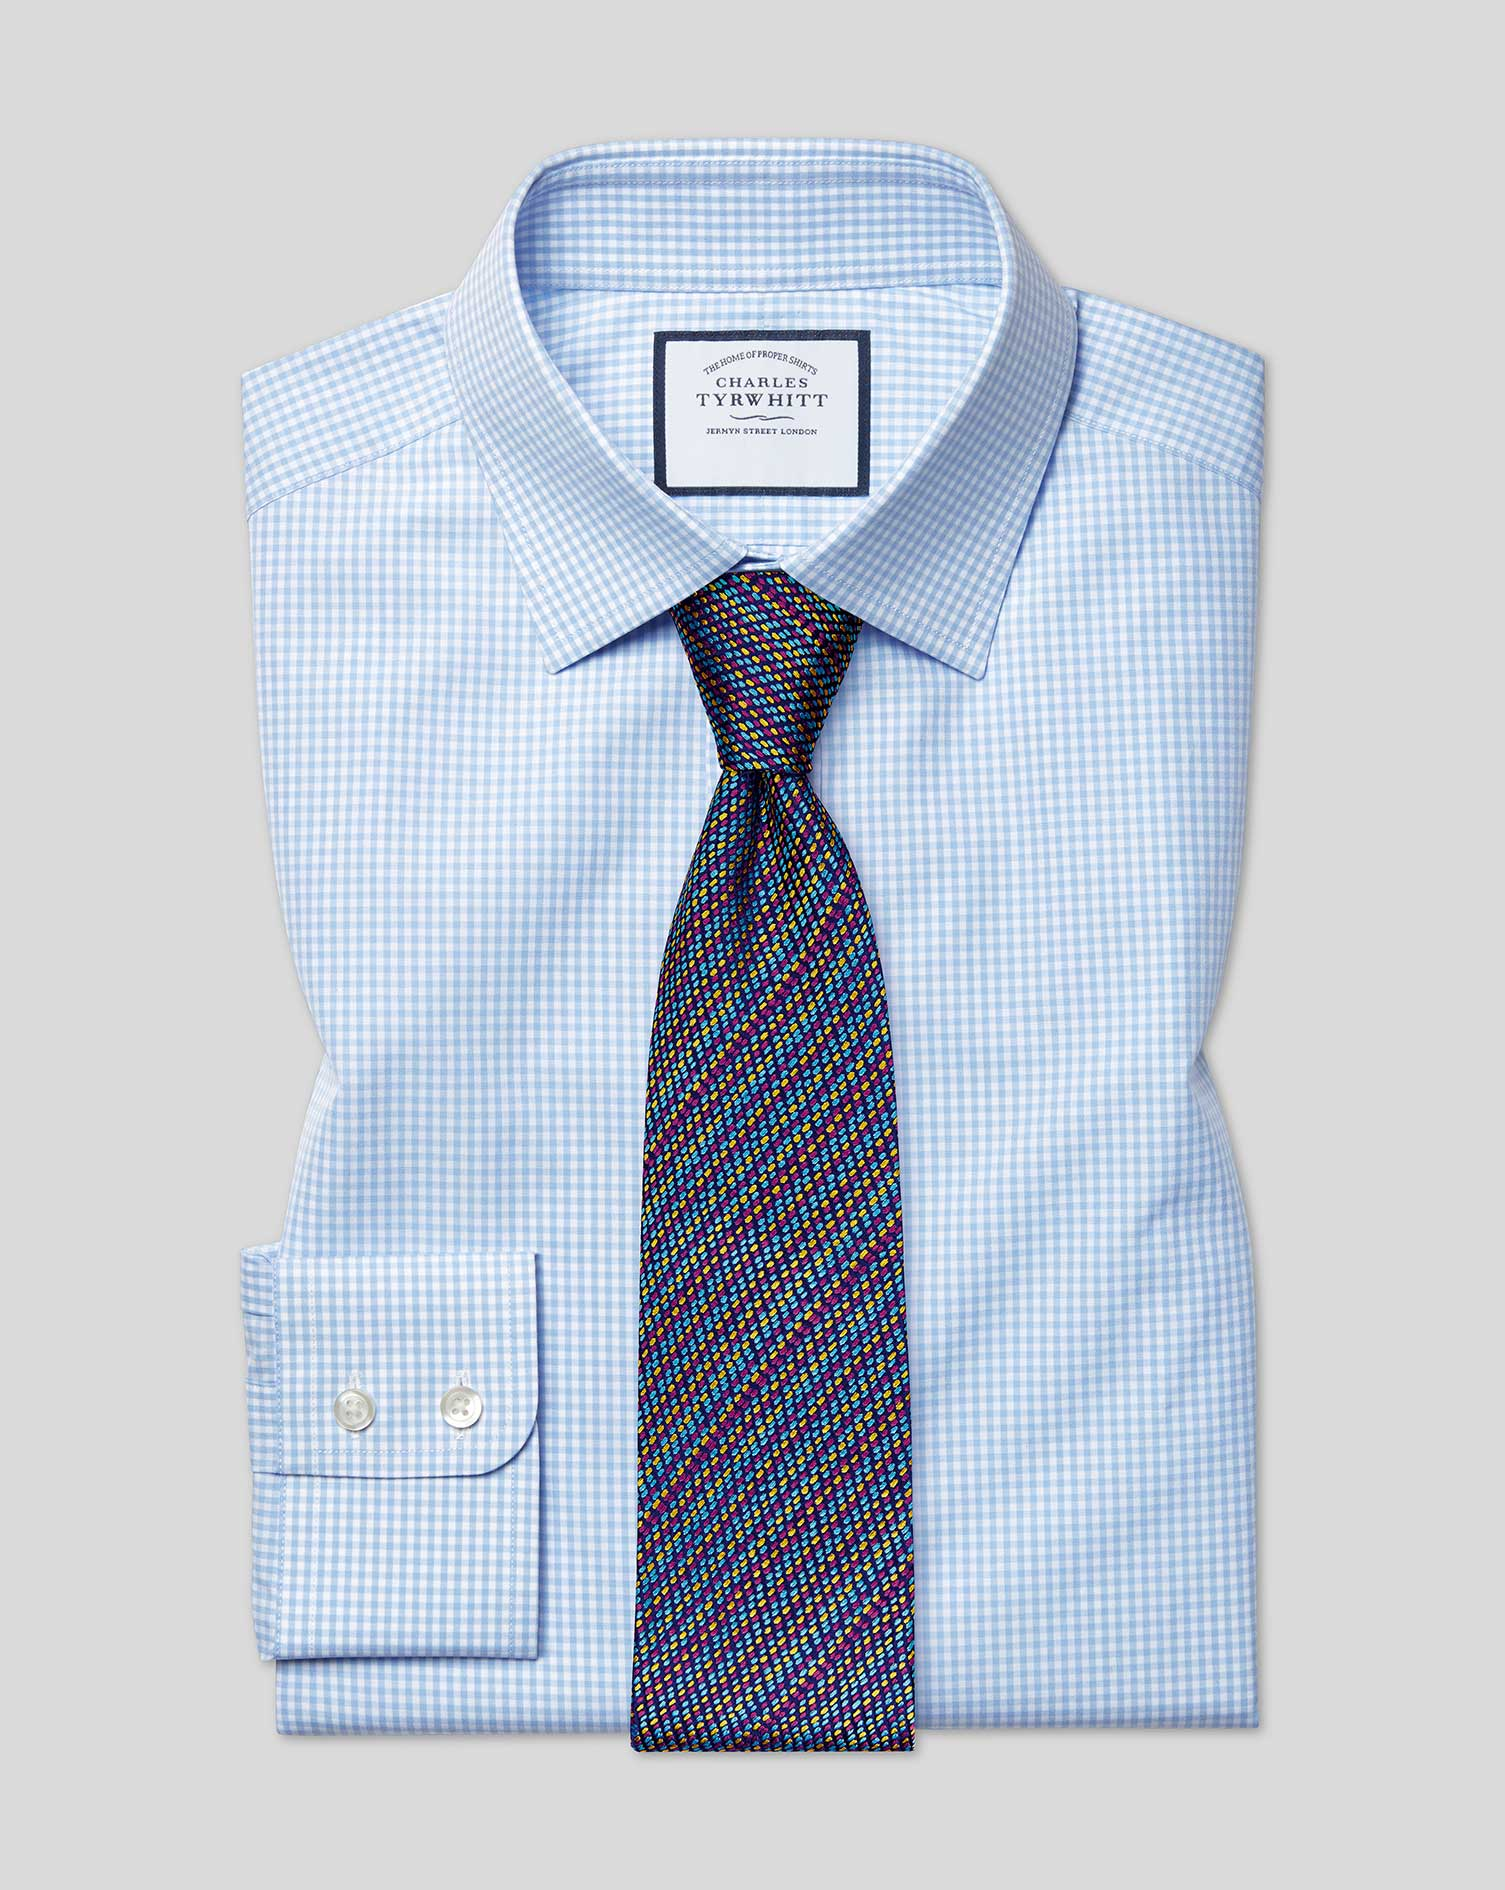 Slim Fit Sky Blue Small Gingham Cotton Formal Shirt Single Cuff Size 17.5/38 by Charles Tyrwhitt